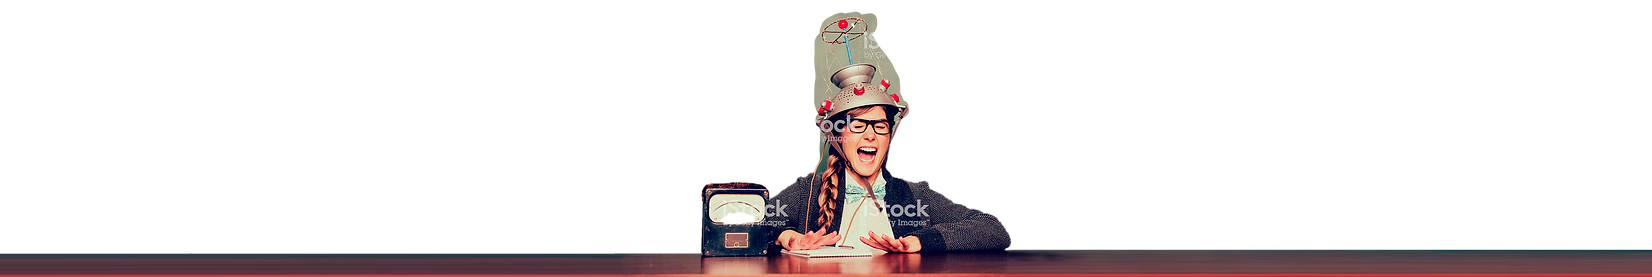 istockphoto-161312789-bas.png